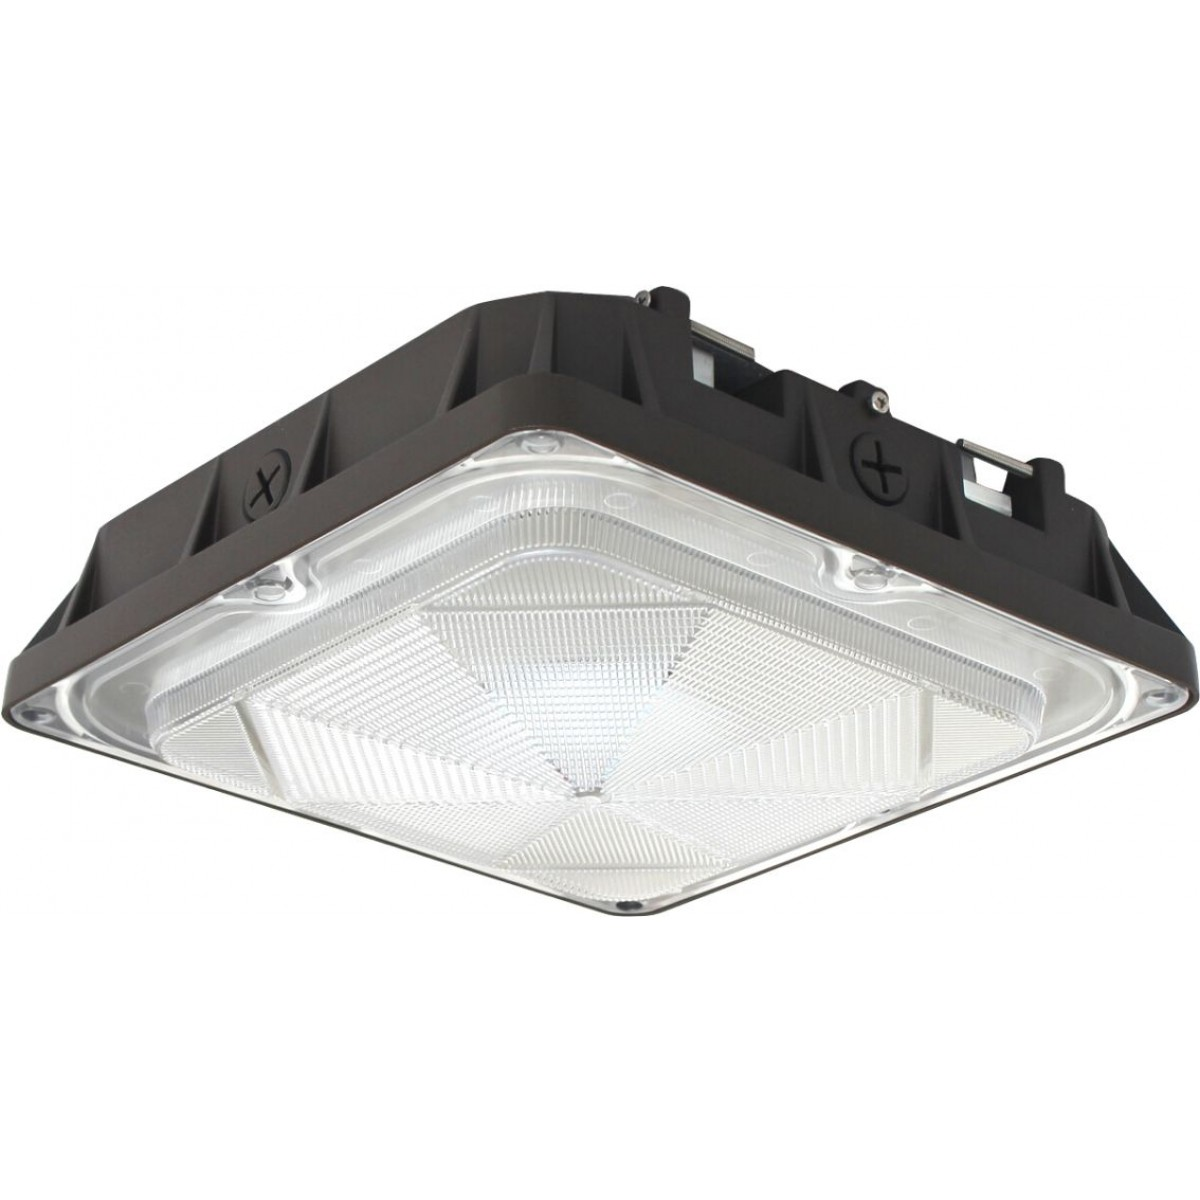 LCM2  sc 1 st  Orbit Industries & LED Canopy Lights - LED Lighting